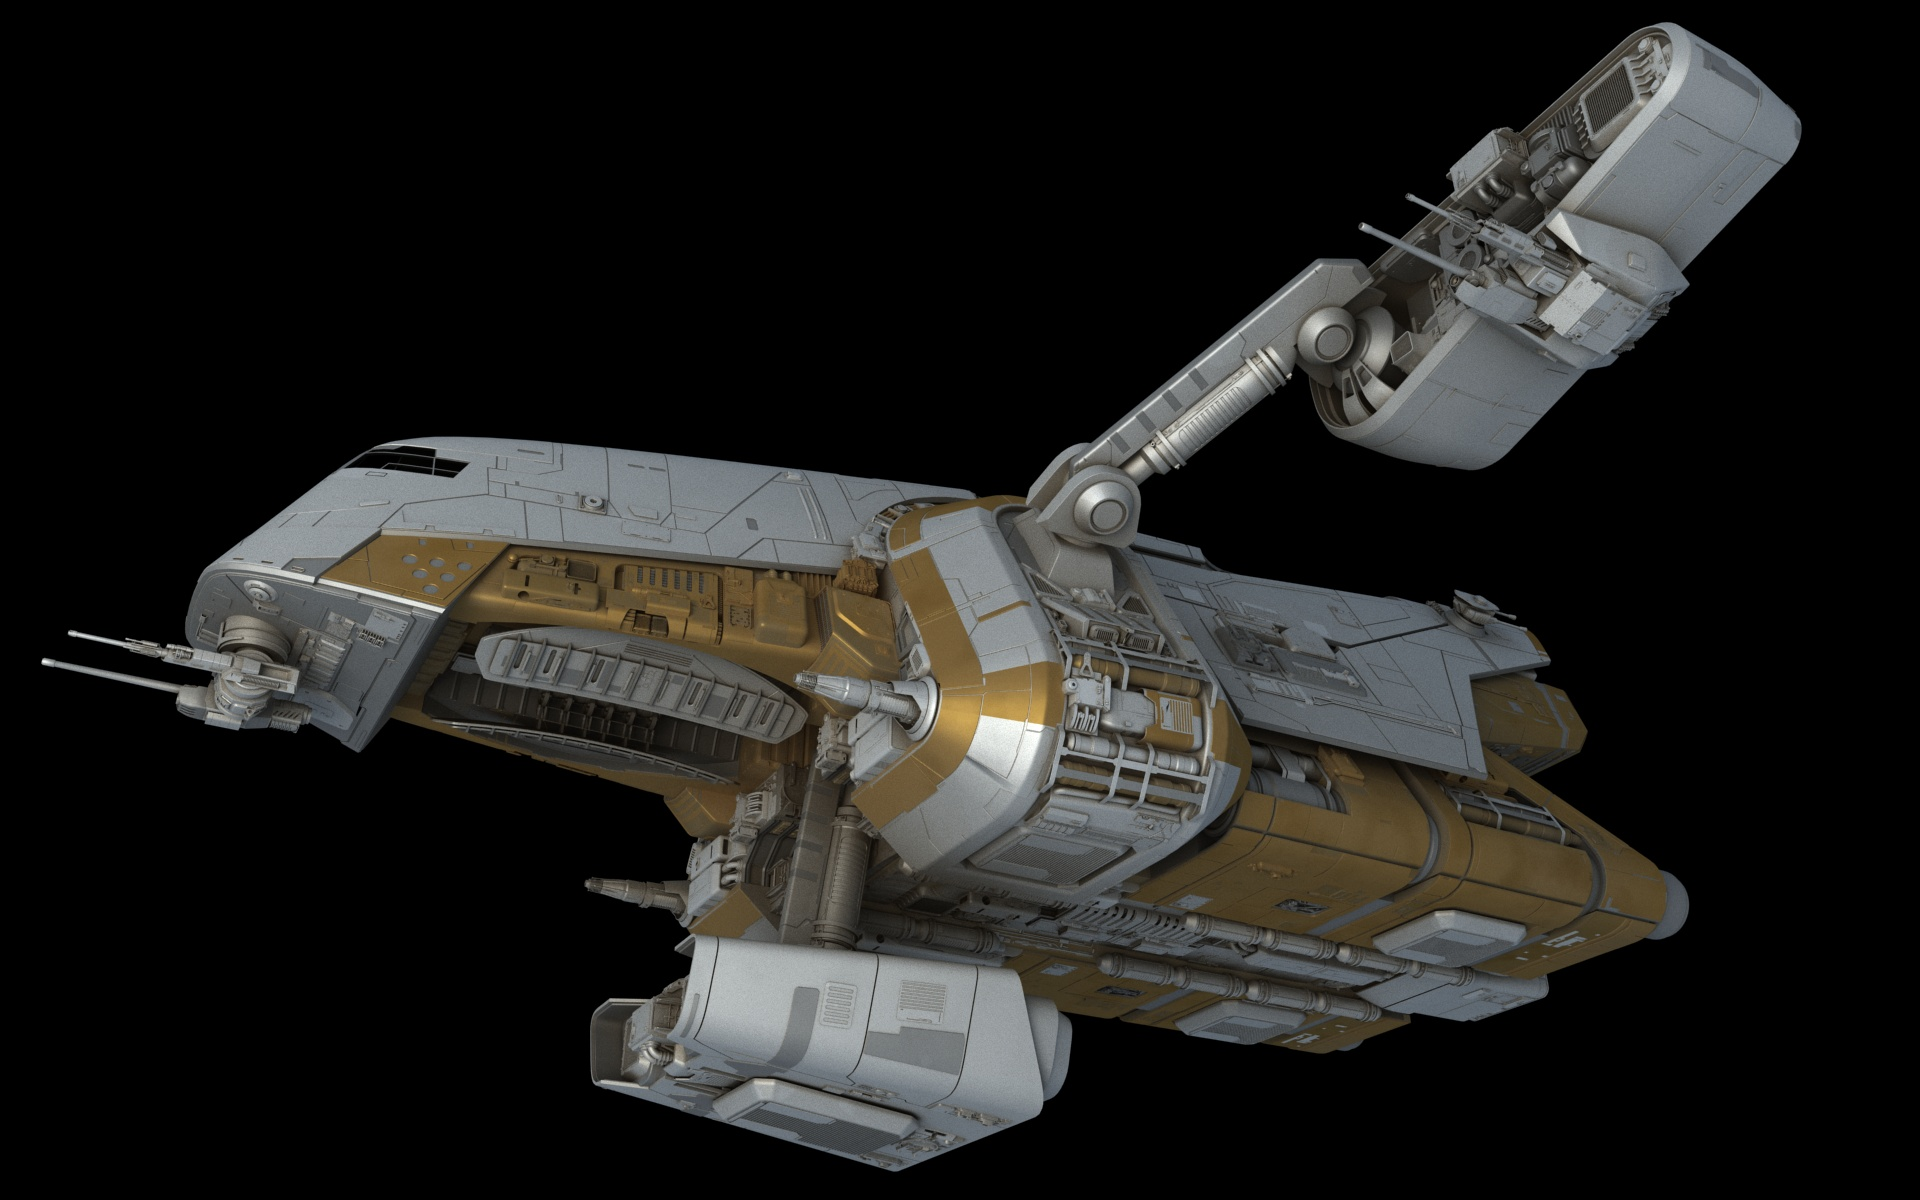 preying mantis patrol ship � fractalspongenet